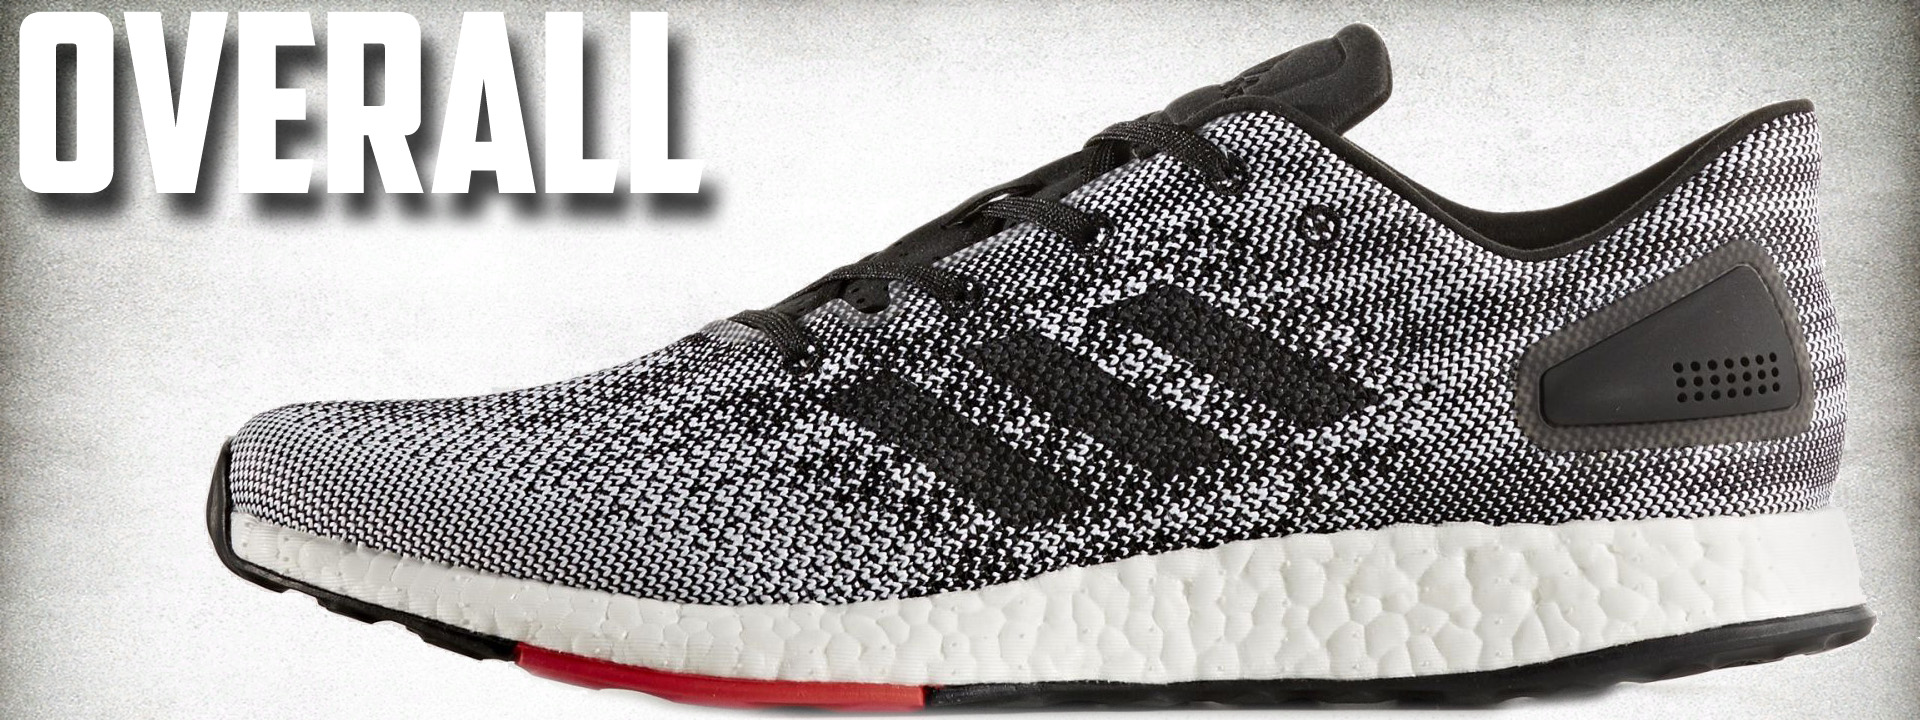 adidas PureBoost DPR | Detailed Look and Performance Review ...